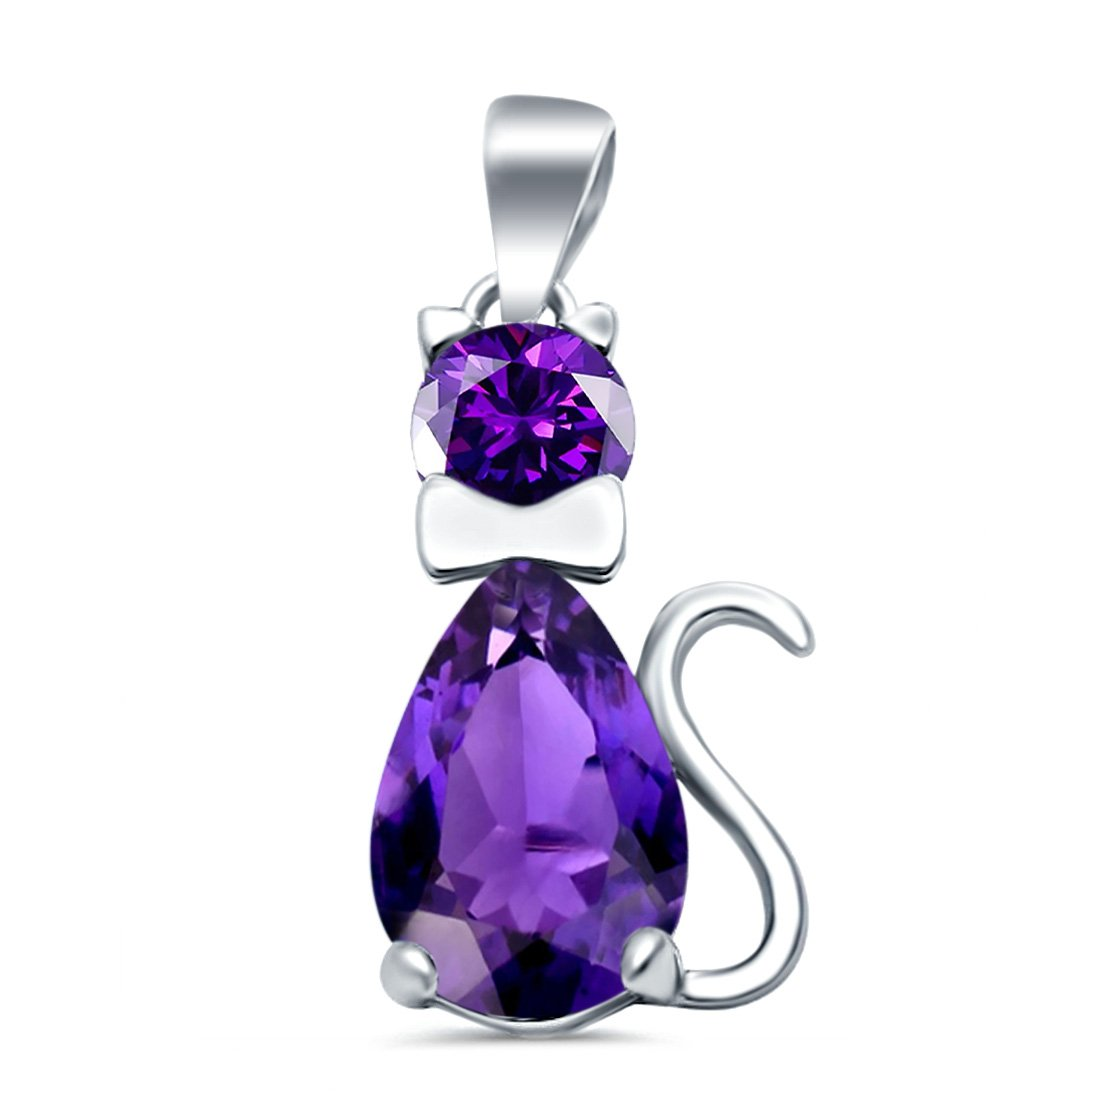 Teardrop Cat Pendant Charm Pear Simulated Amethyst CZ 925 Sterling Silver